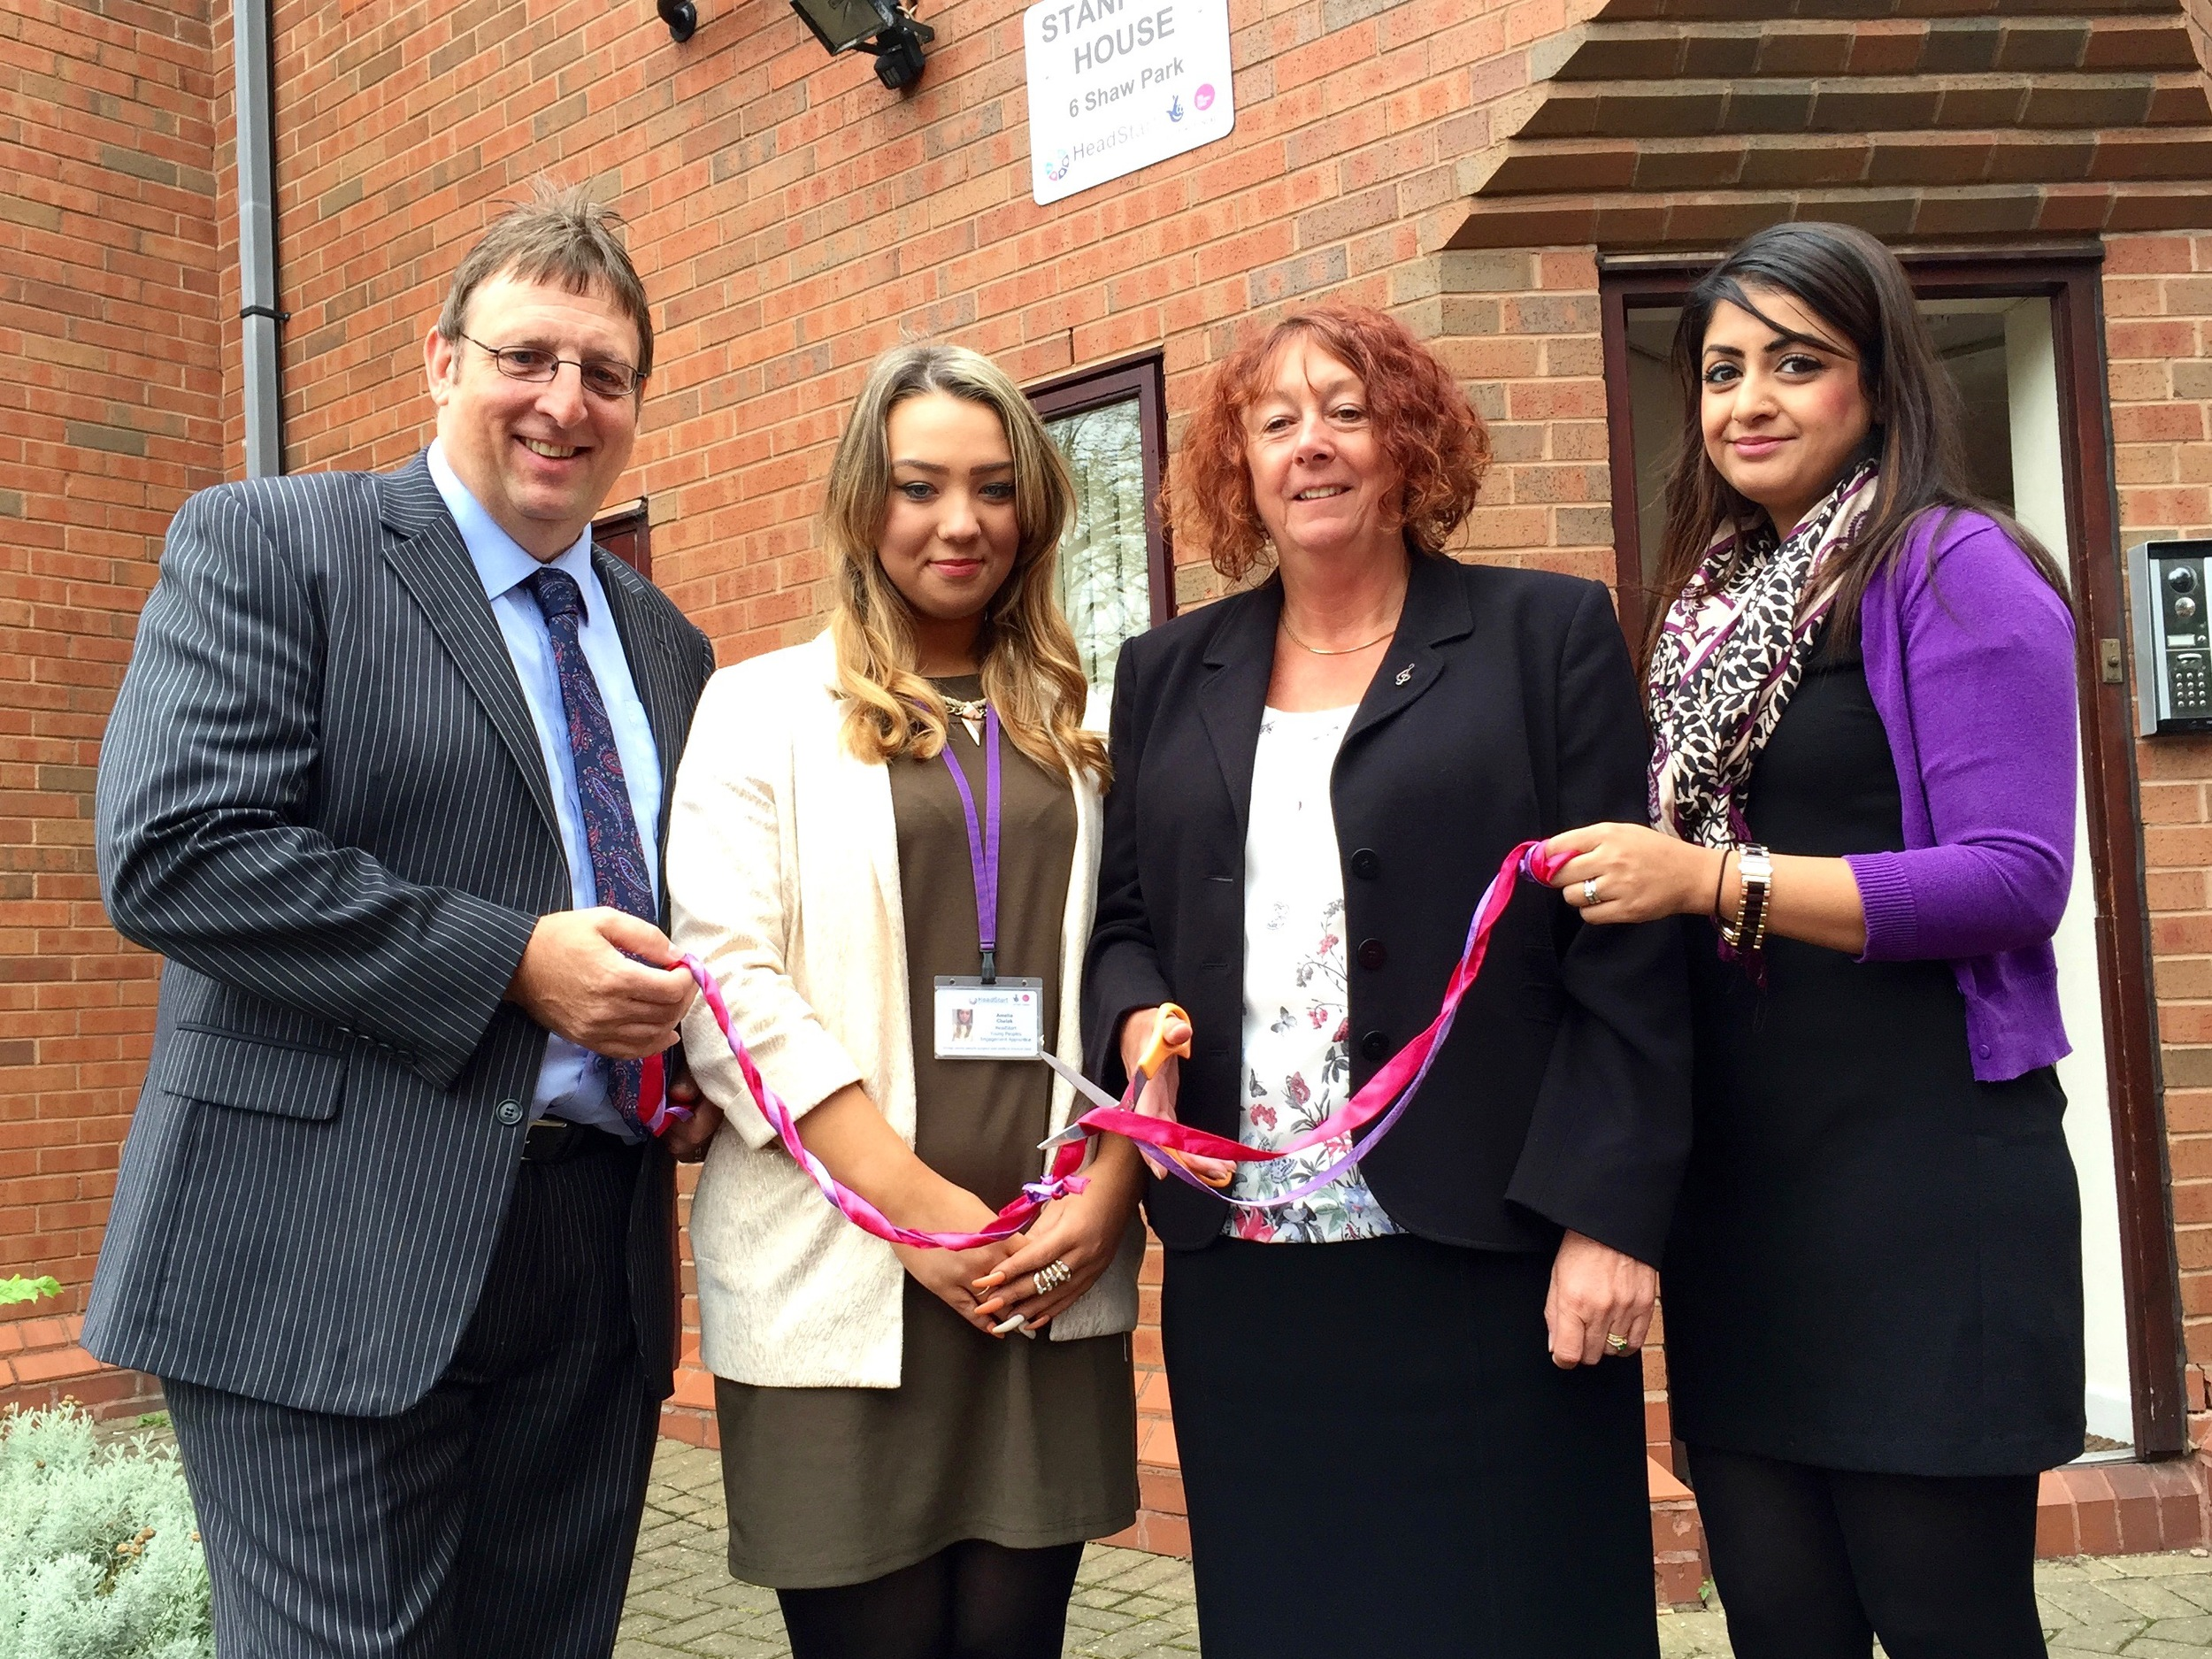 Councillor Val Gibson cutting the ribbon at the new offices, alongside Kevin, Sunita, and HeadStart Apprentice,Amelia.